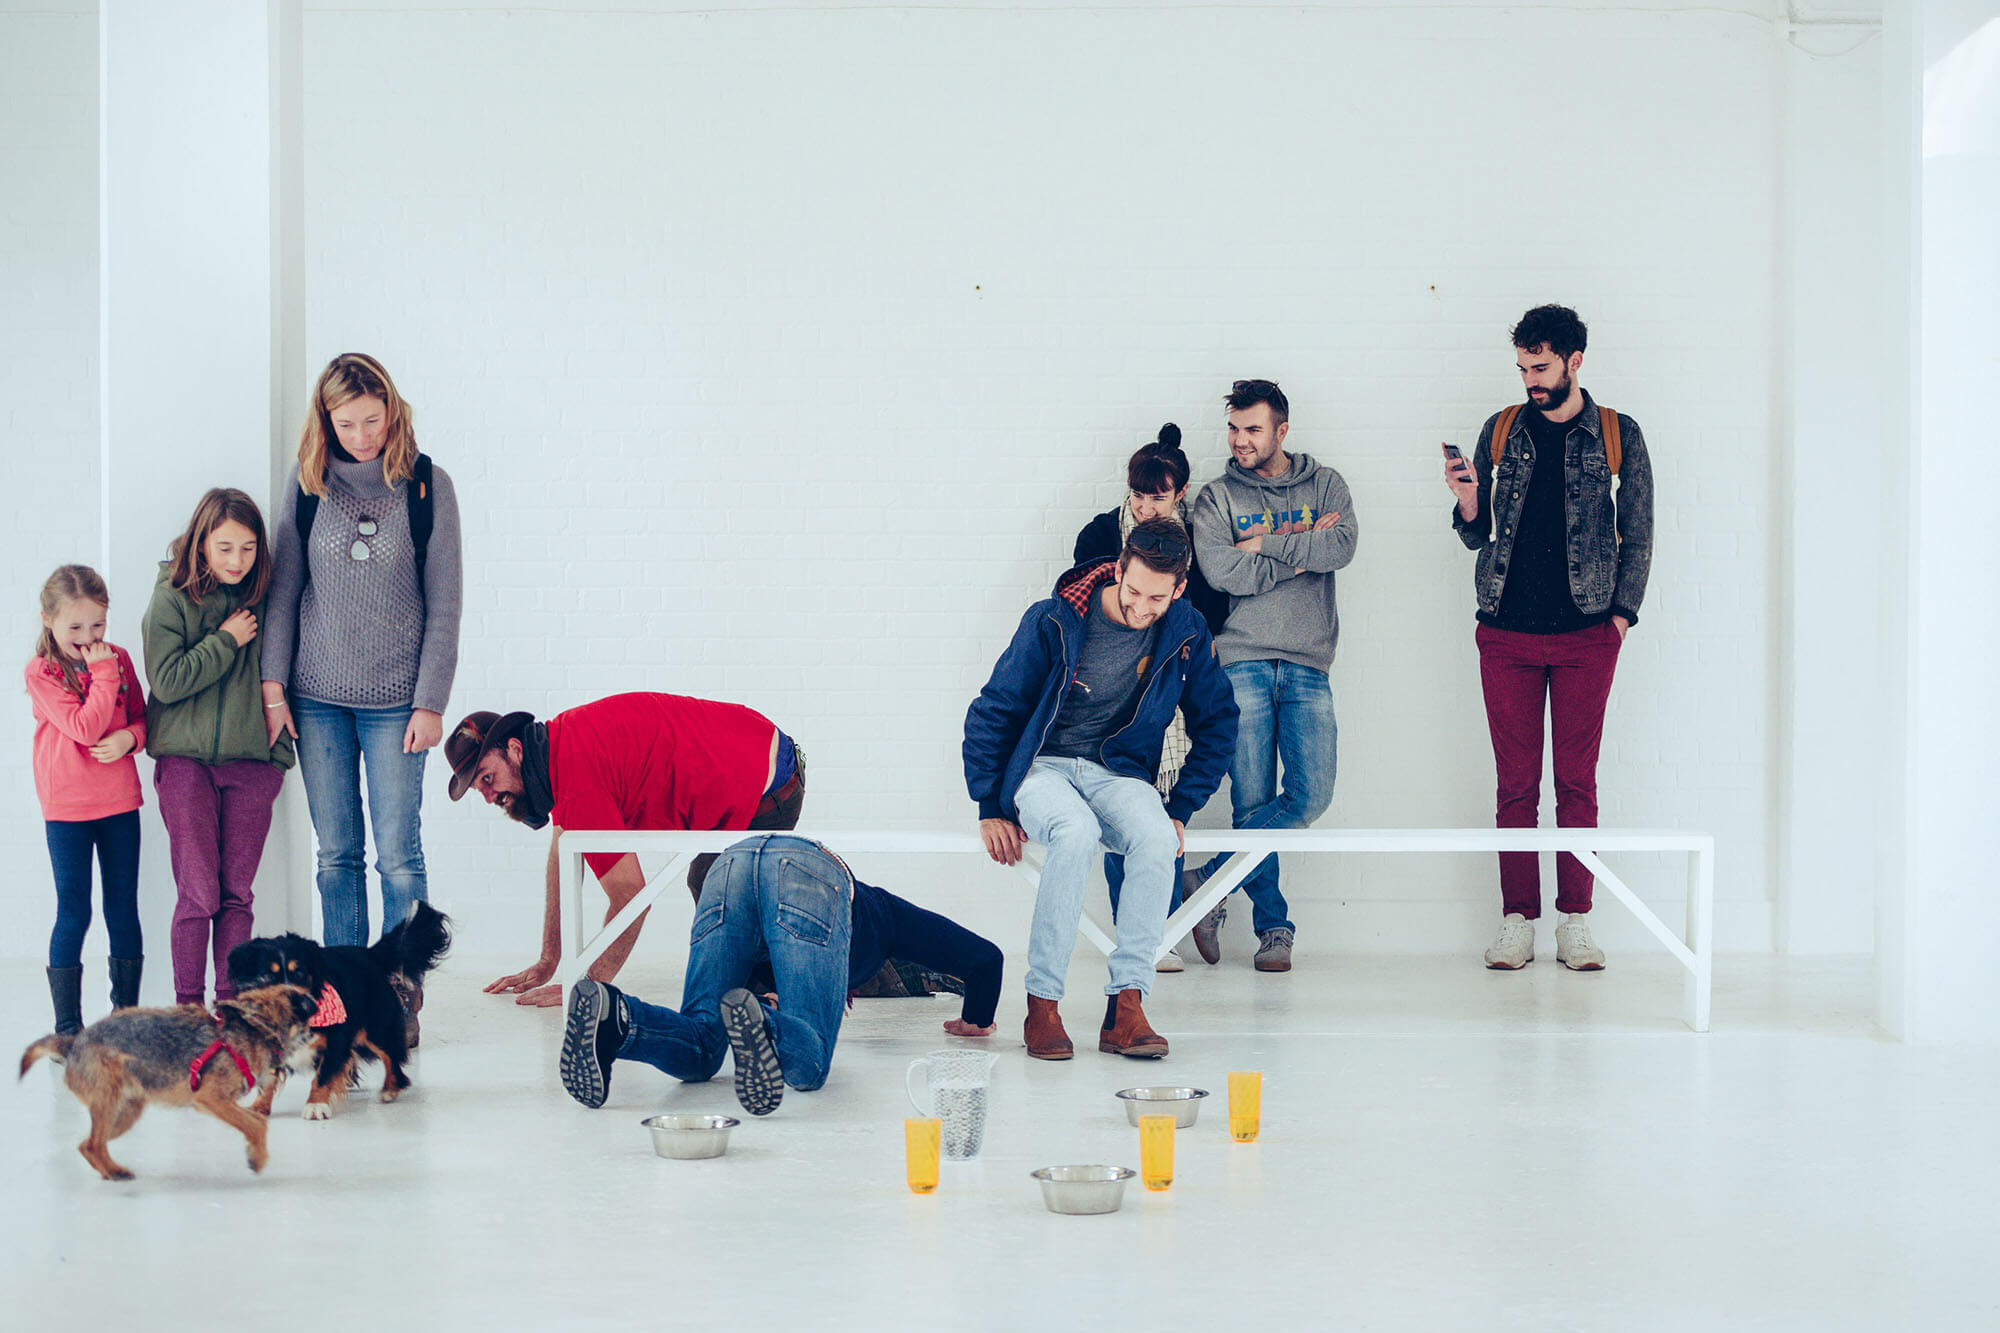 Group of people sitting and standing in a white room looking at two small dogs. Water bowls and jugs are laid out on the floor.